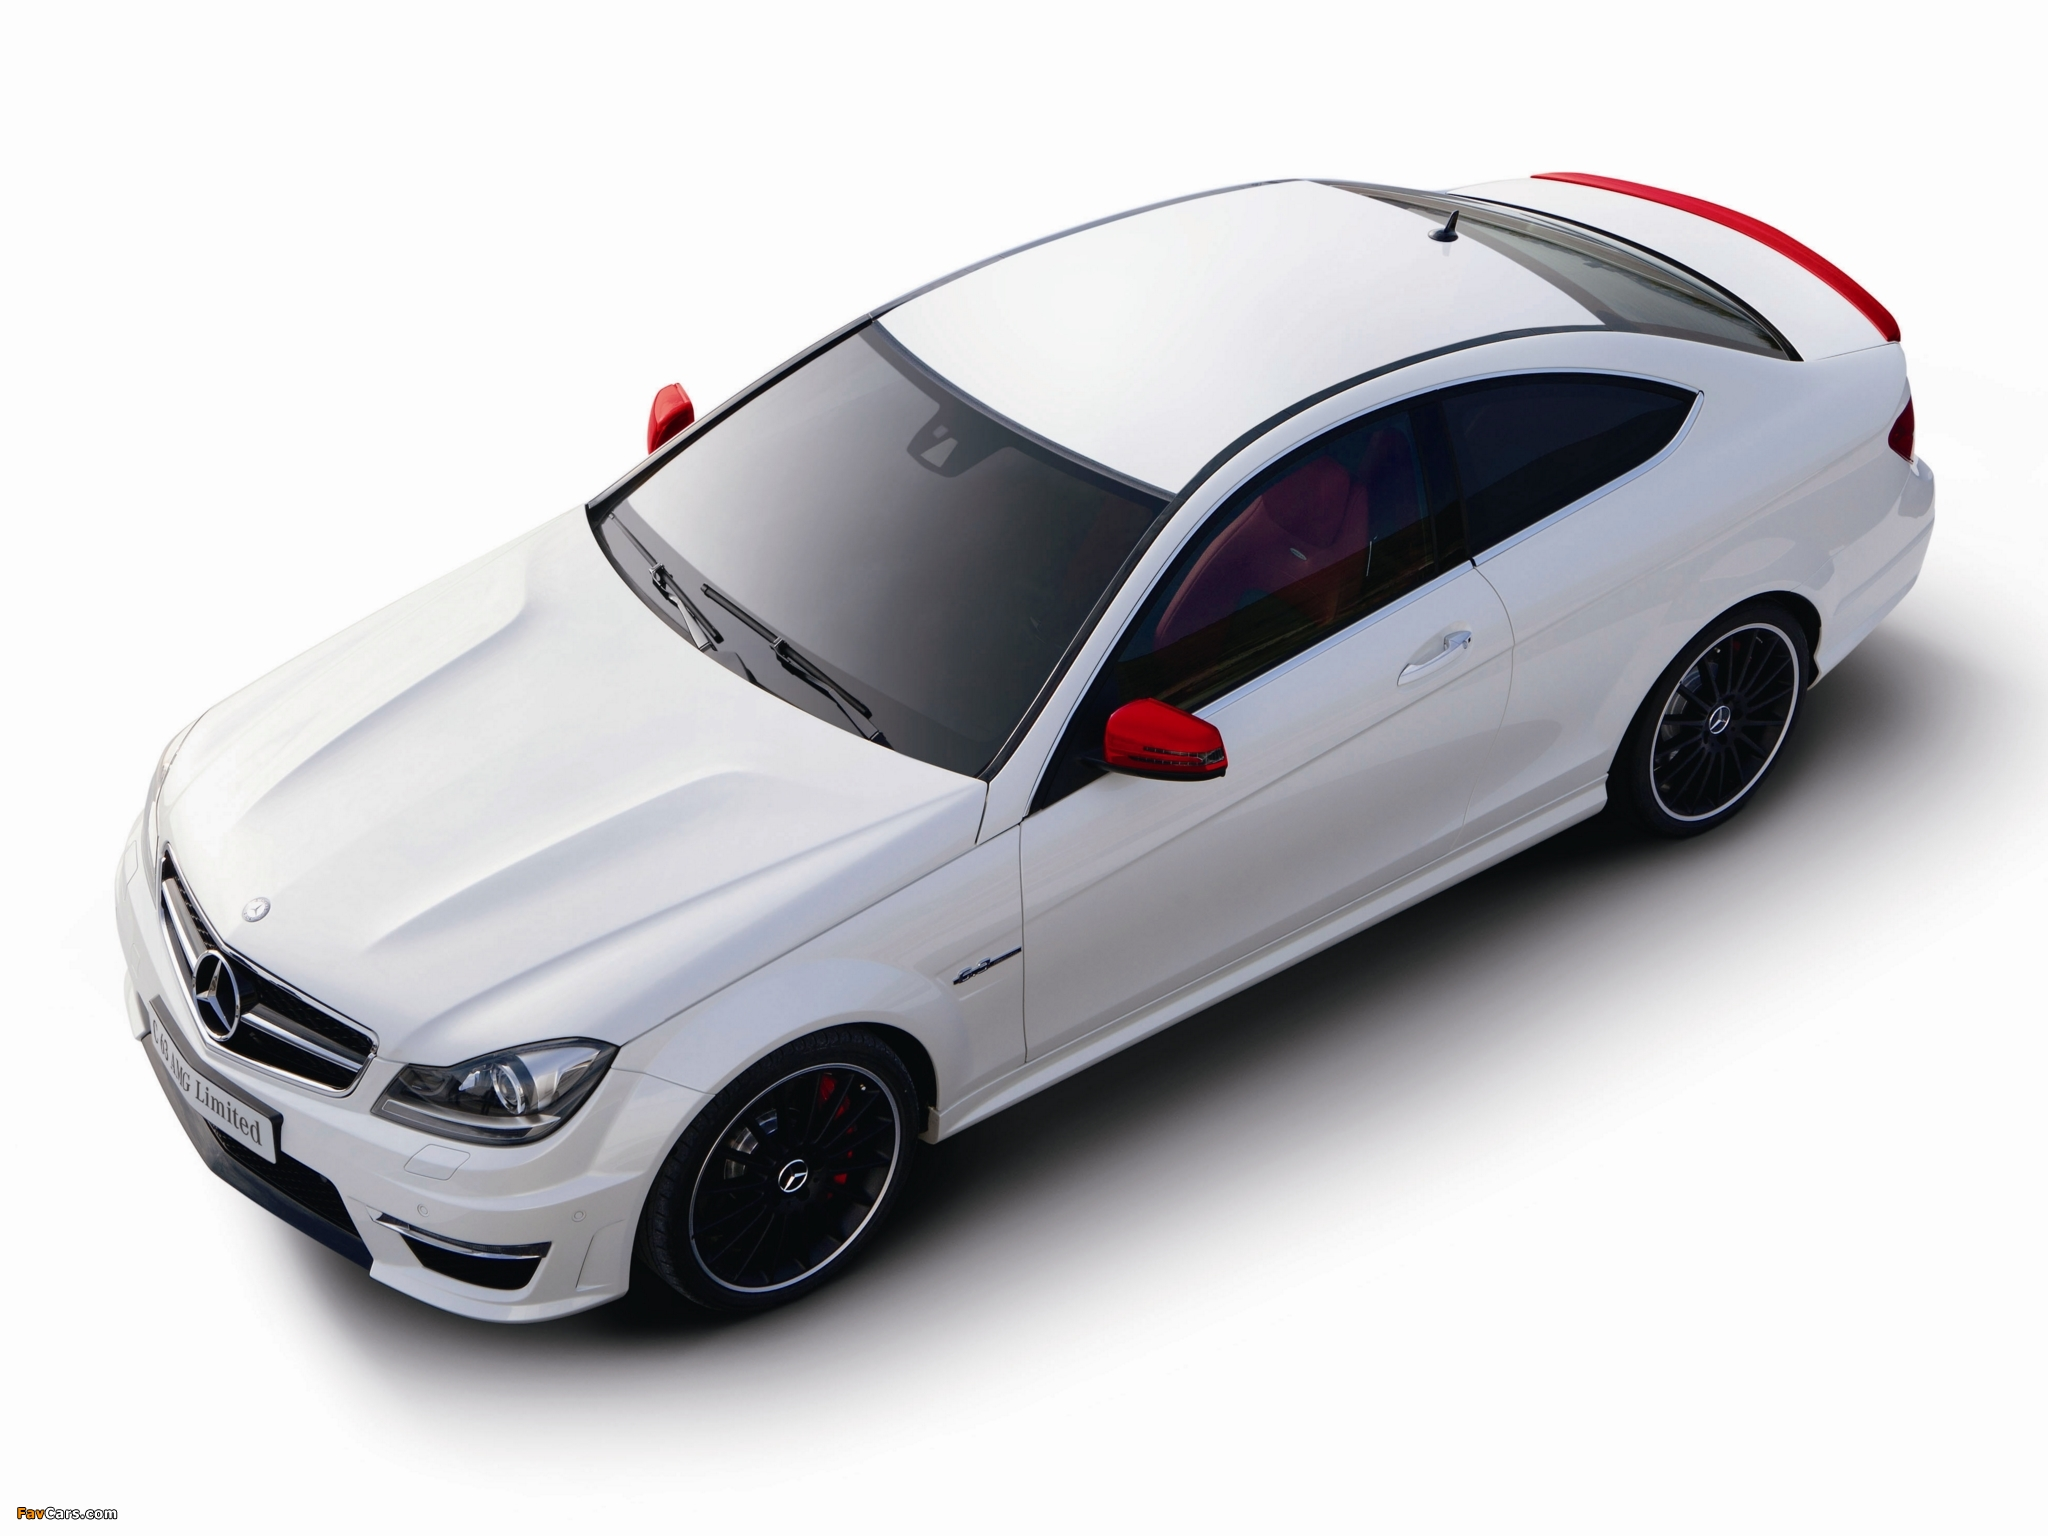 Mercedes-Benz C 63 AMG Limited Coupe (C204) 2013 photos (2048 x 1536)